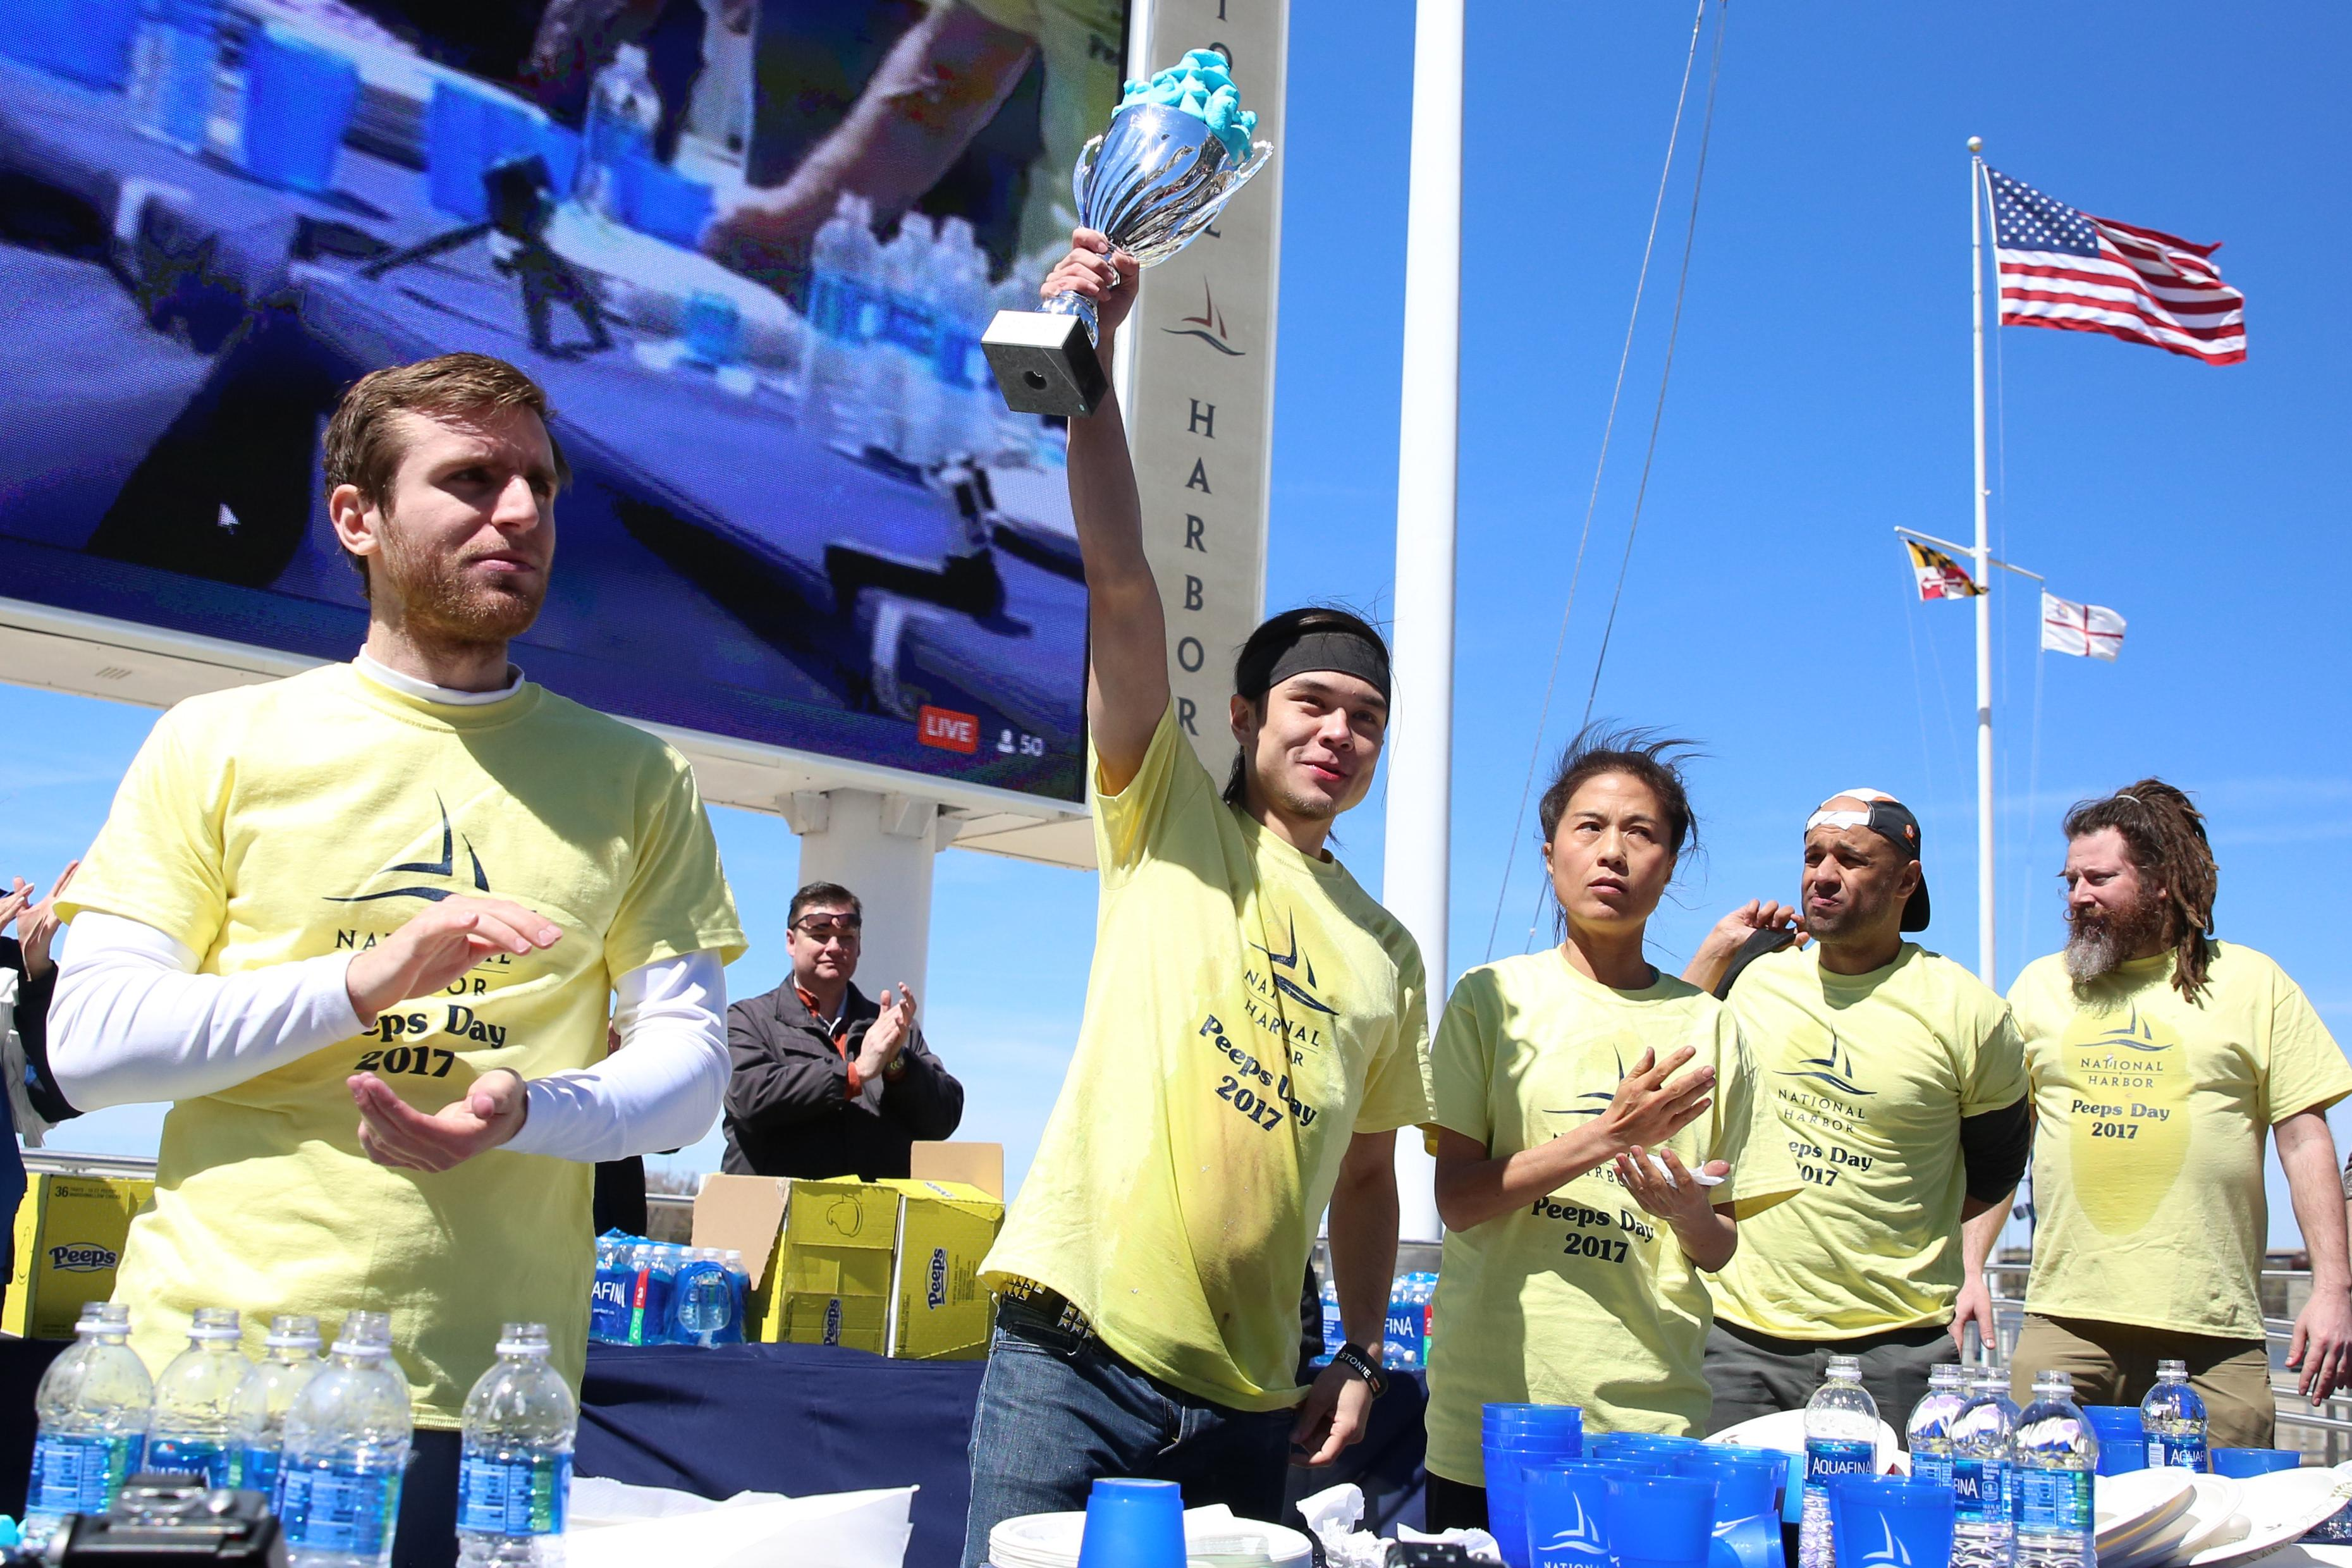 Veteran champ Matt Stonie won, having eaten 255 Peeps - a new record.  (Amanda Andrade-Rhoades/DC Refined)